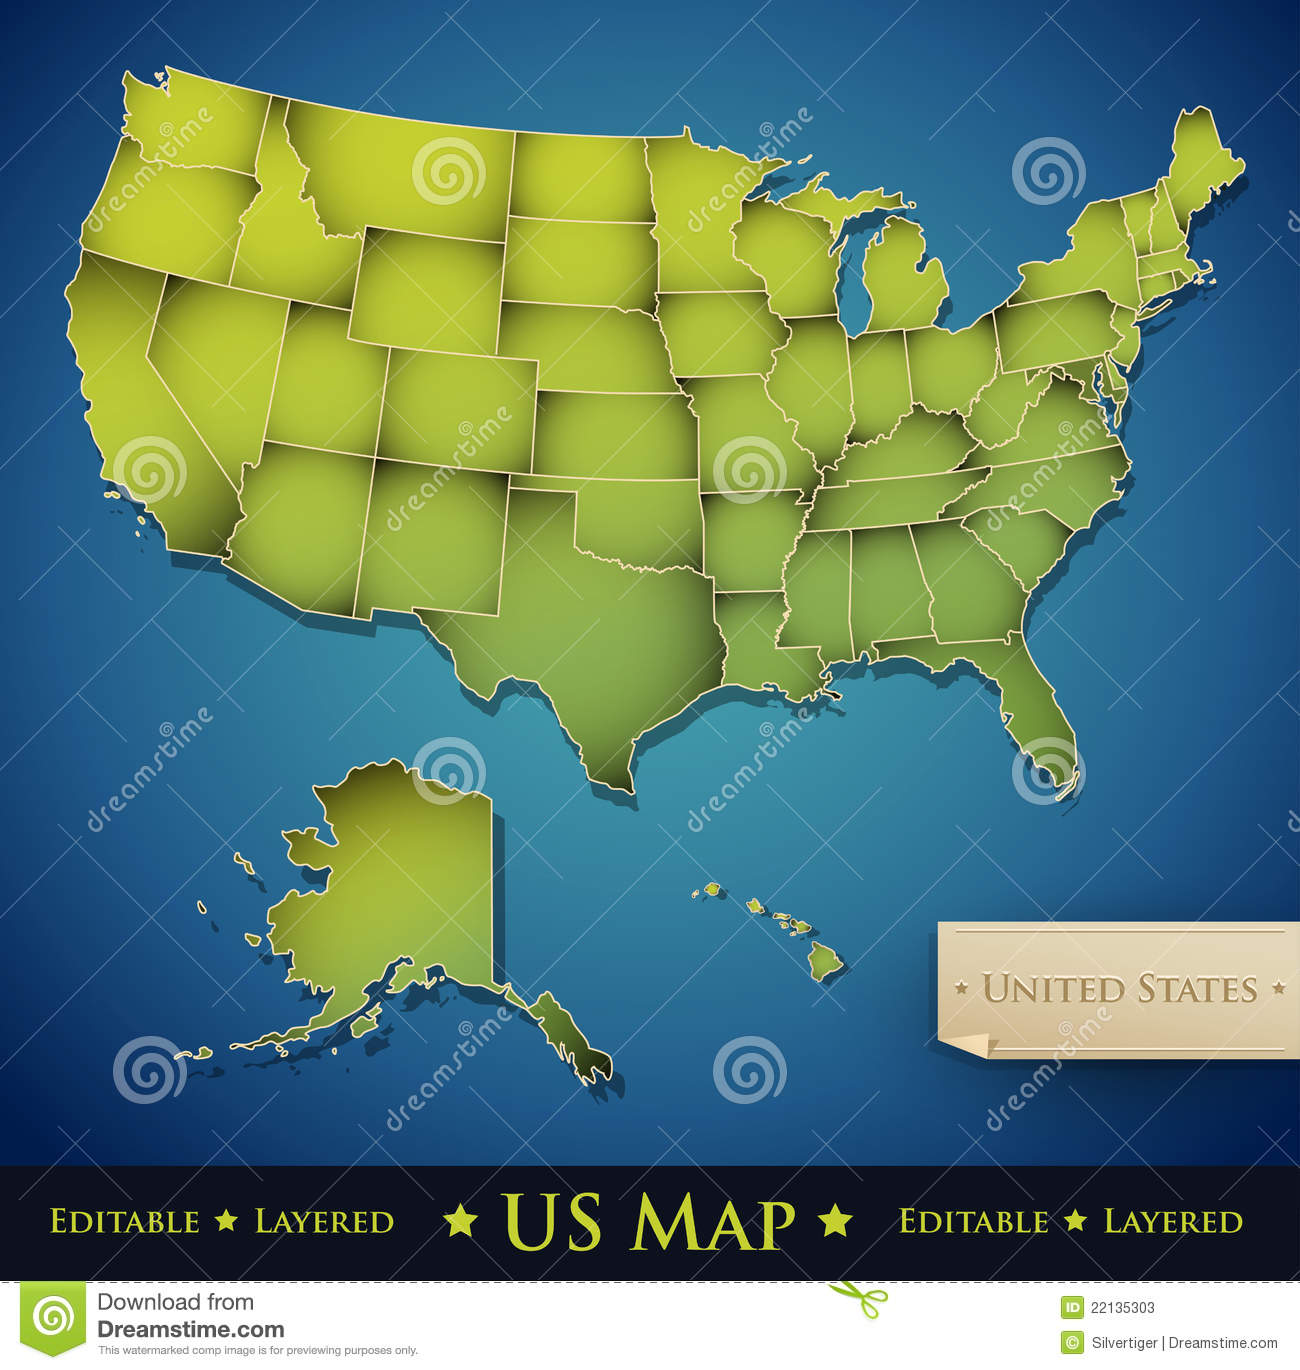 United States Map With All 50 States Separated Stock Vector ... on map of states that are bankrupt, map of pennsylvania, map of guam, map of africa, labeled map of 50 states, map of california, map of us with states, map of southern states, map of south dakota, printable map of 50 states, map of new york state, map of indiana, map games pibmug 50 states, map of texas, alphabetical list 50 states, of the 50 states, blank map of states, map of all countries, map of the states, map of eastern states,